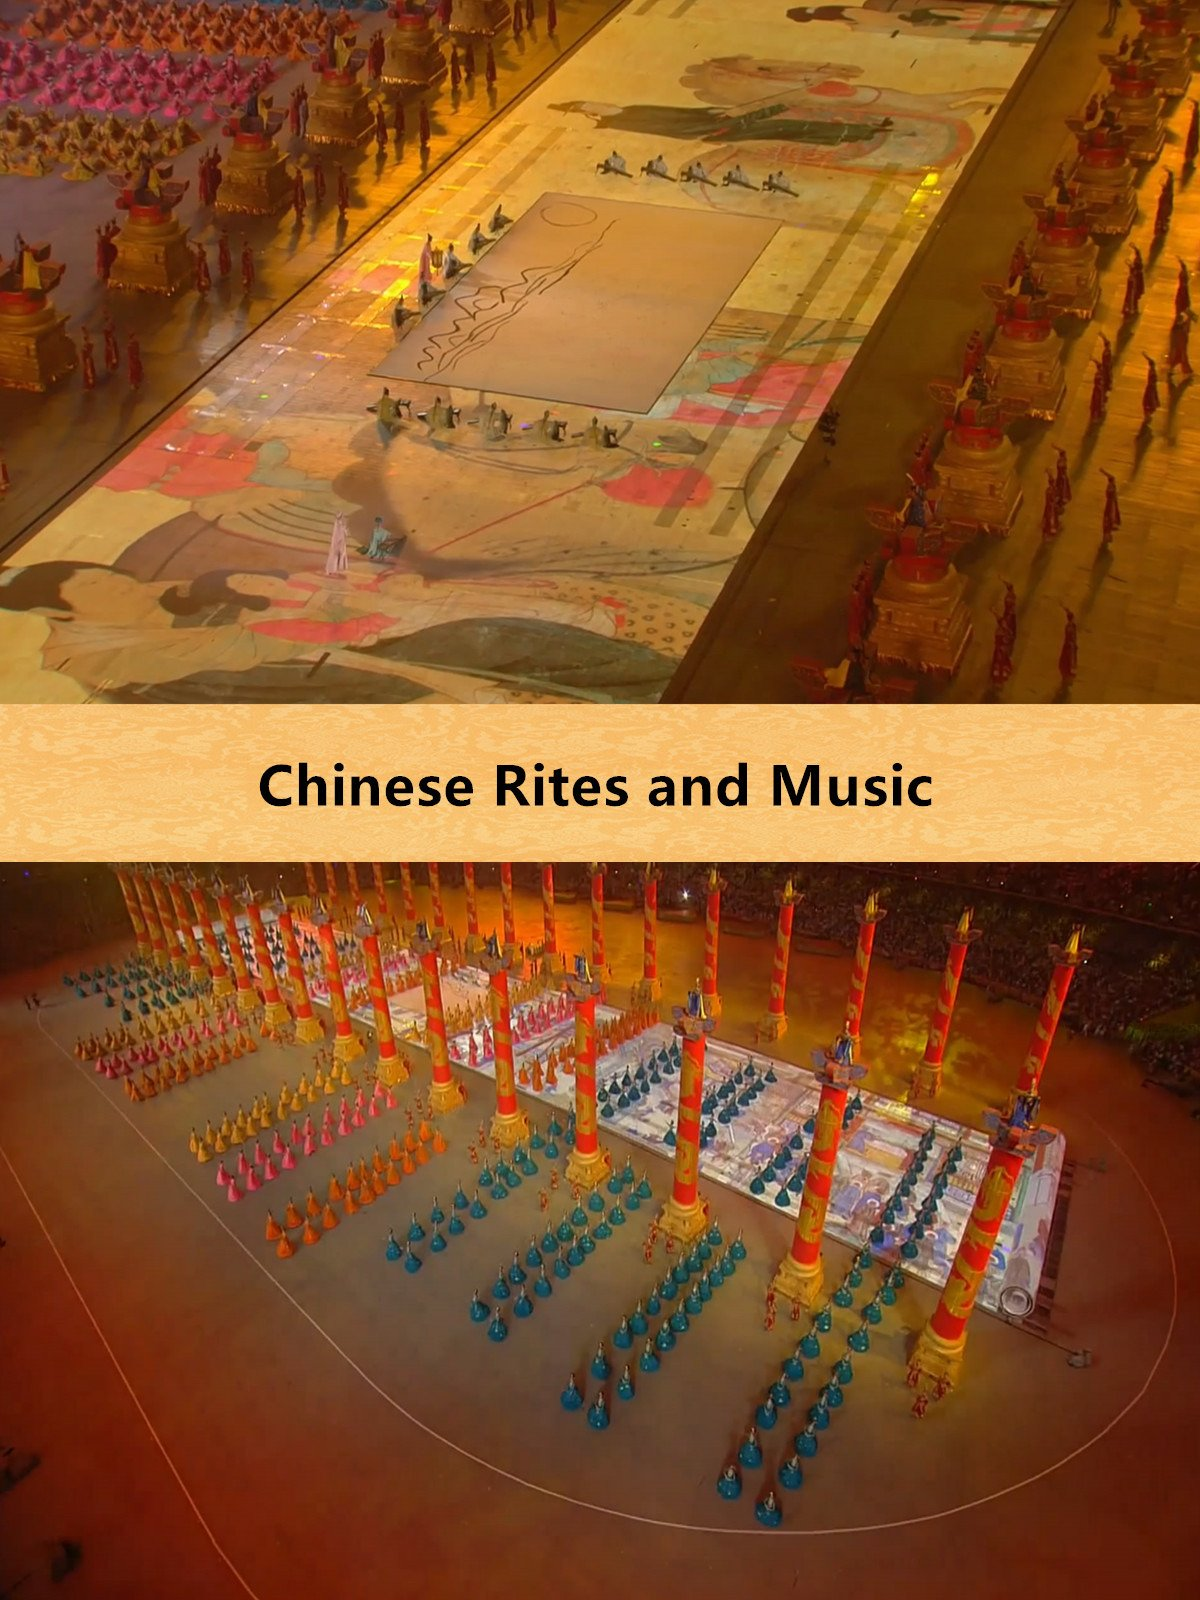 Clip: Chinese Rites and Music